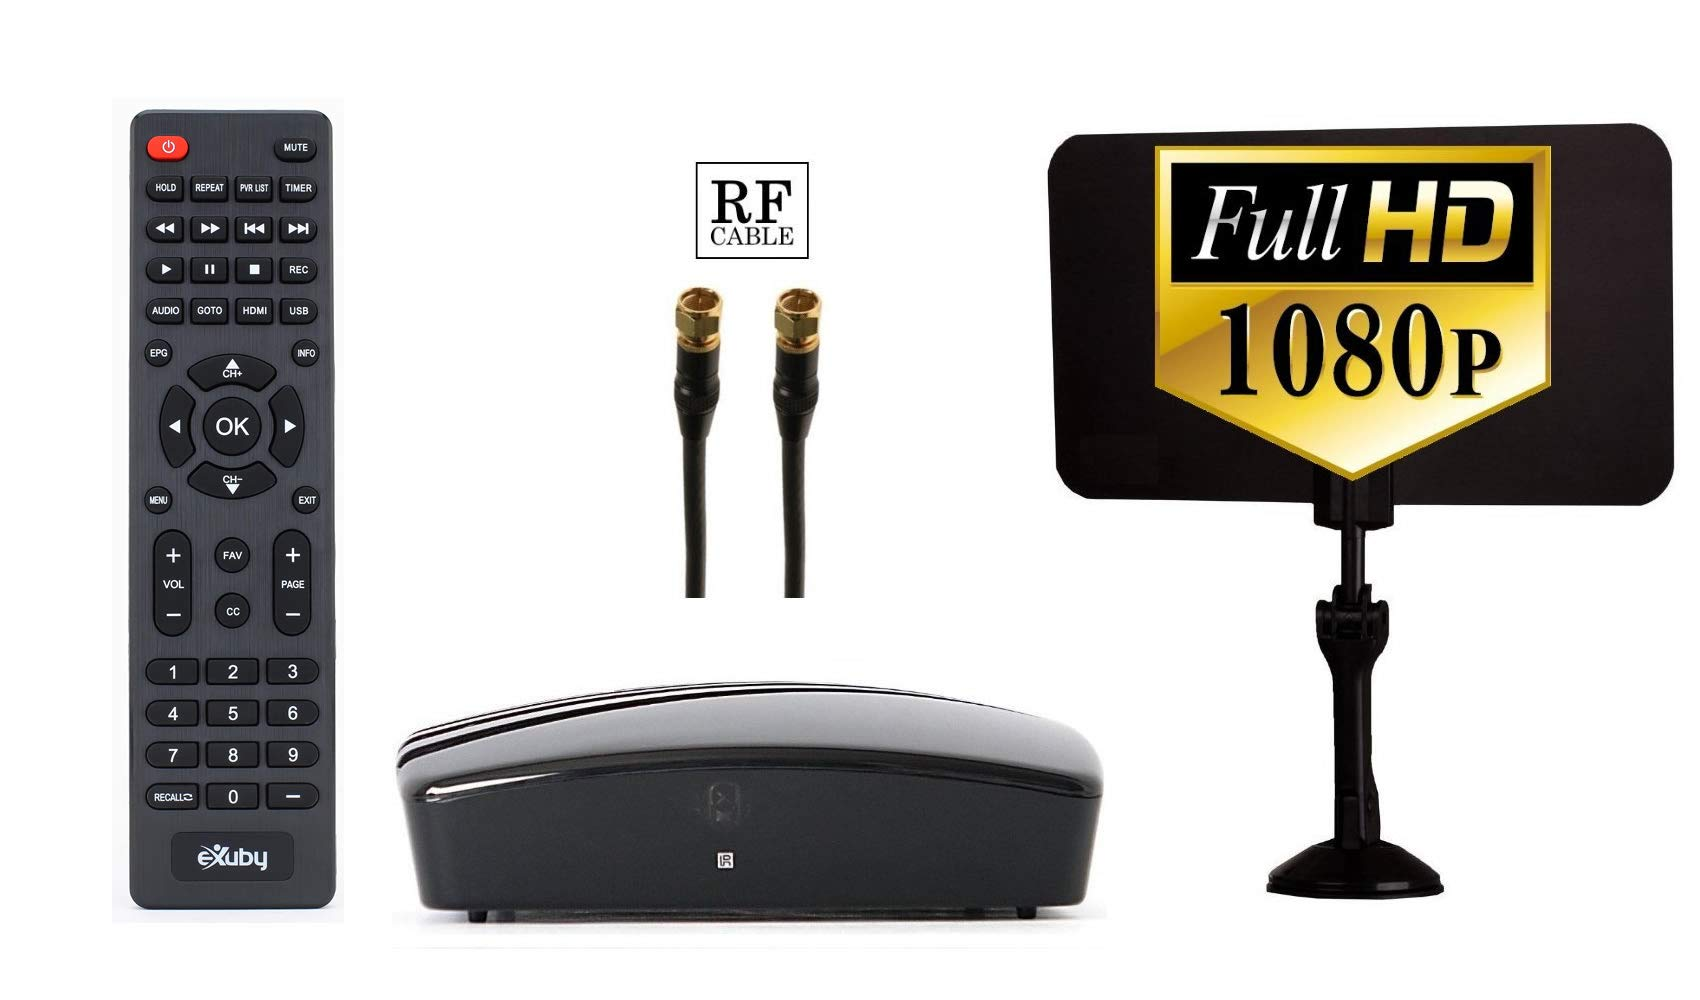 Digital TV Converter Box - Digital Antenna - RF and RCA Cable - Complete Bundle to View and Record HD Channels (Instant or Scheduled Recording, 1080P HDTV, HDMI Output and 7 Day Program Guide)